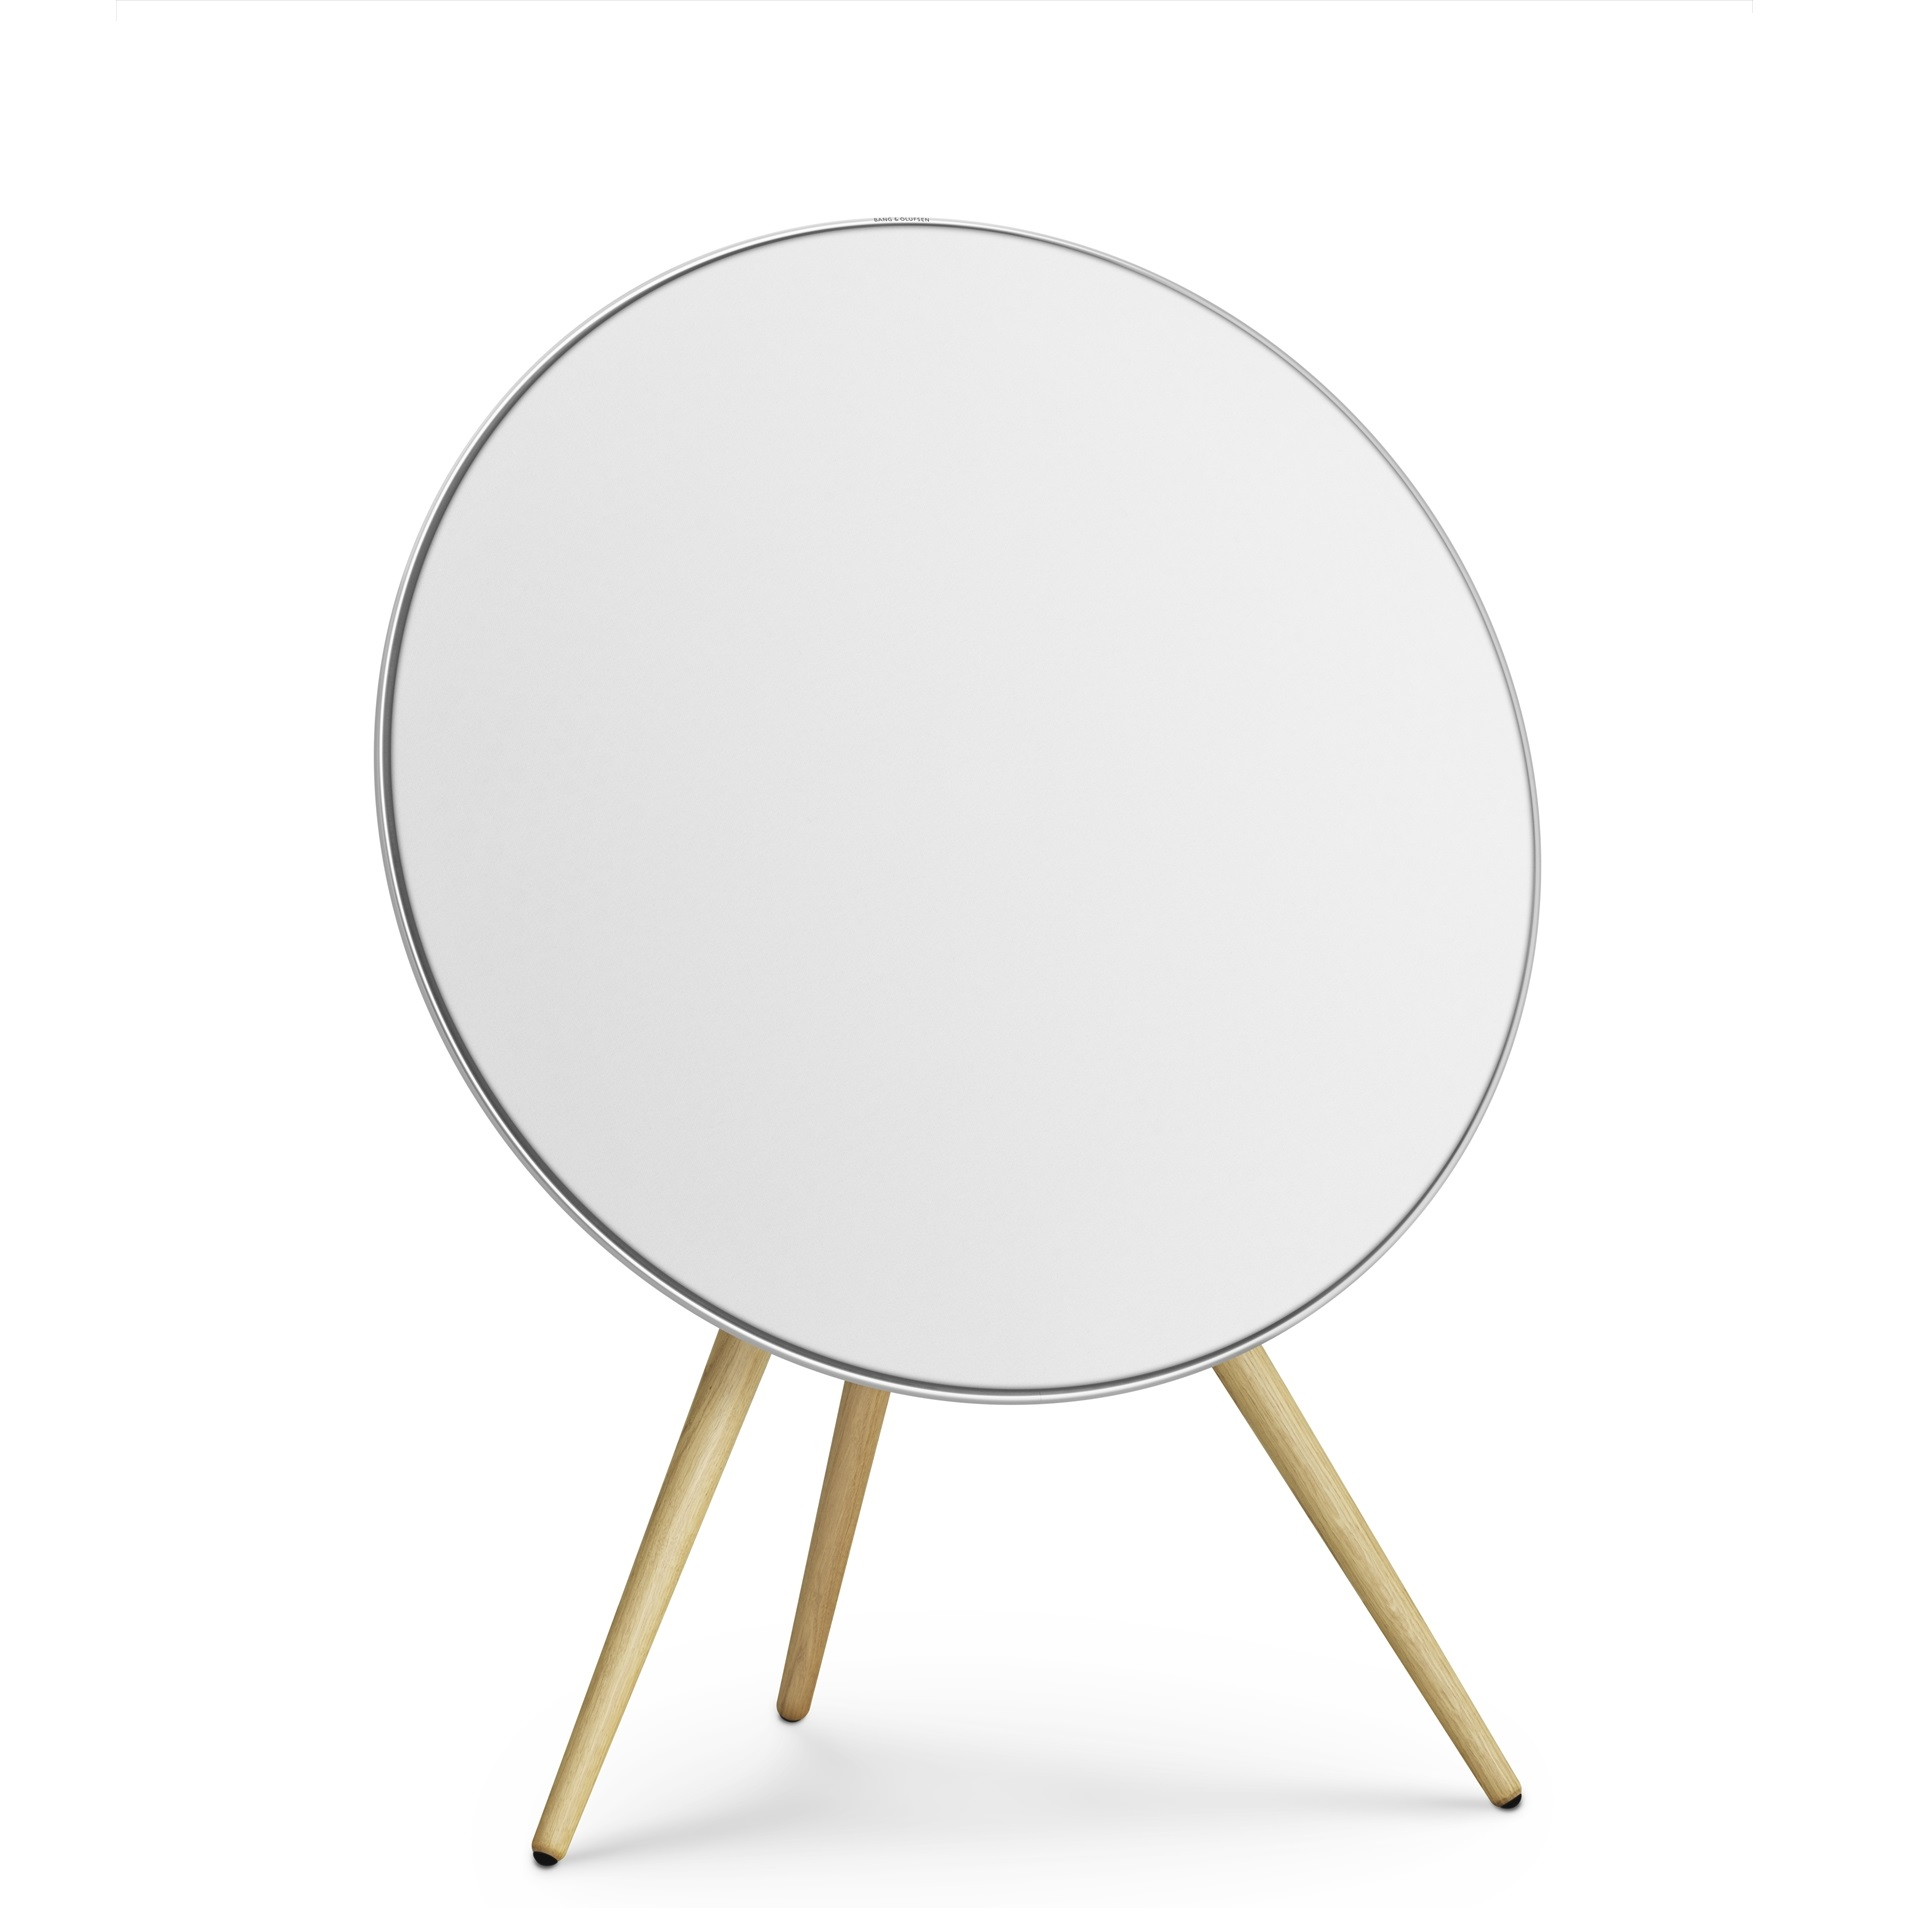 Beoplay A9 4th Generation